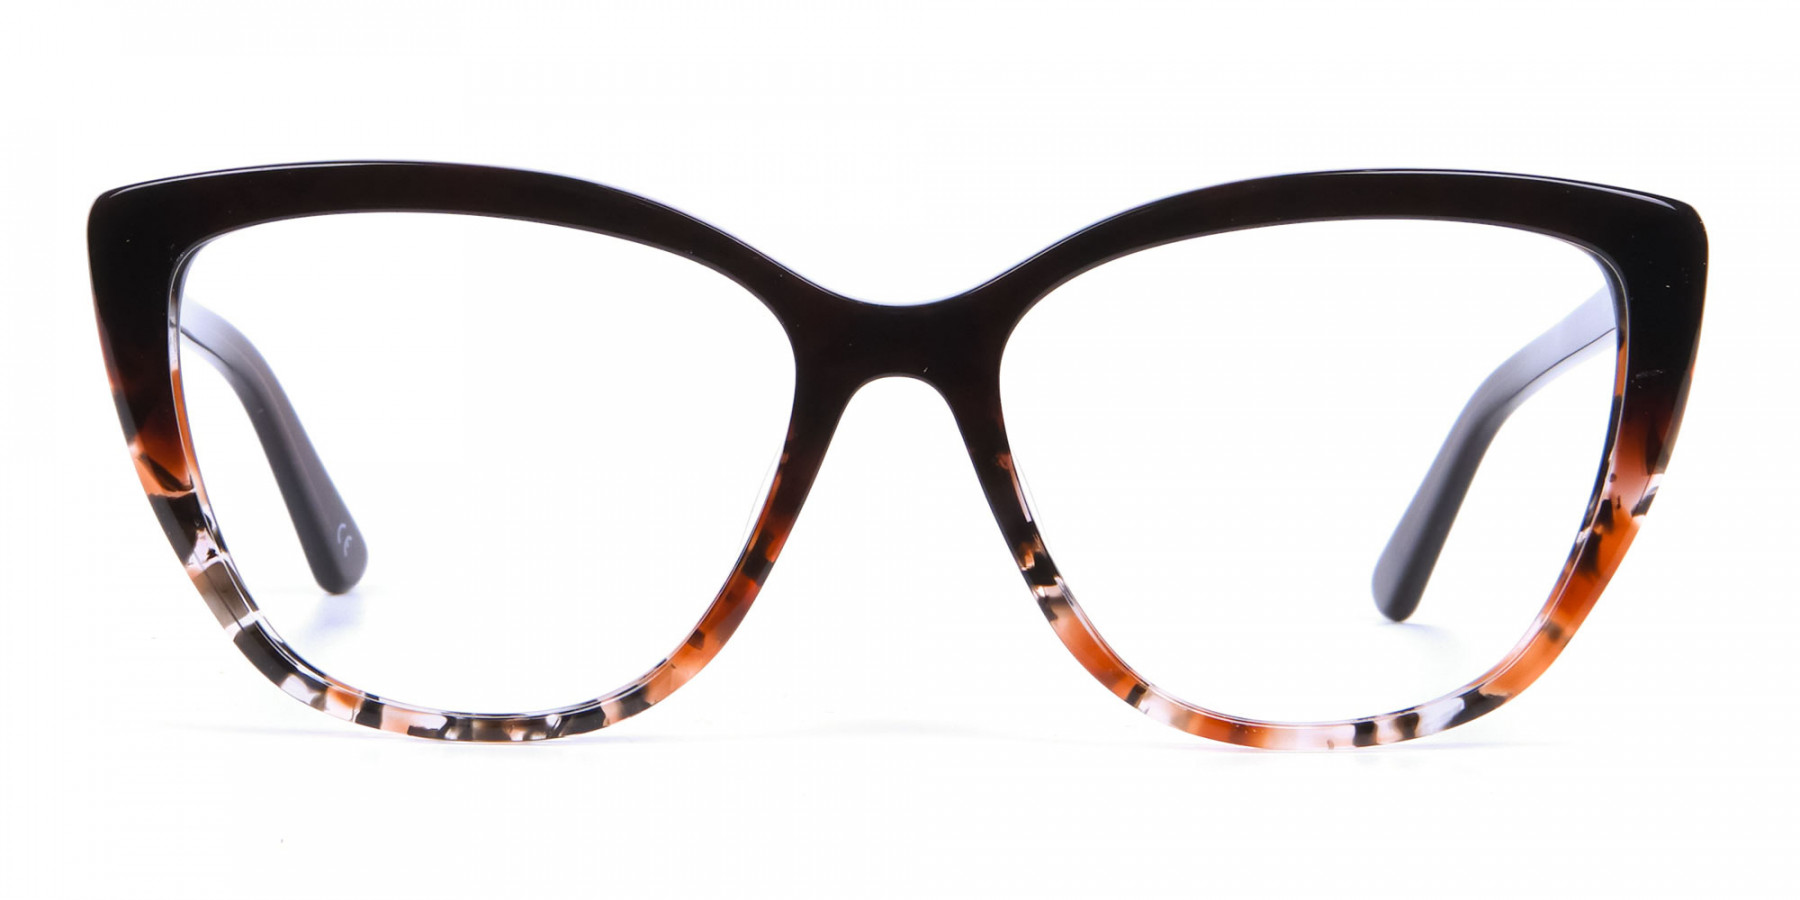 Brown Tortoiseshell Cat Eye Glasses for Women